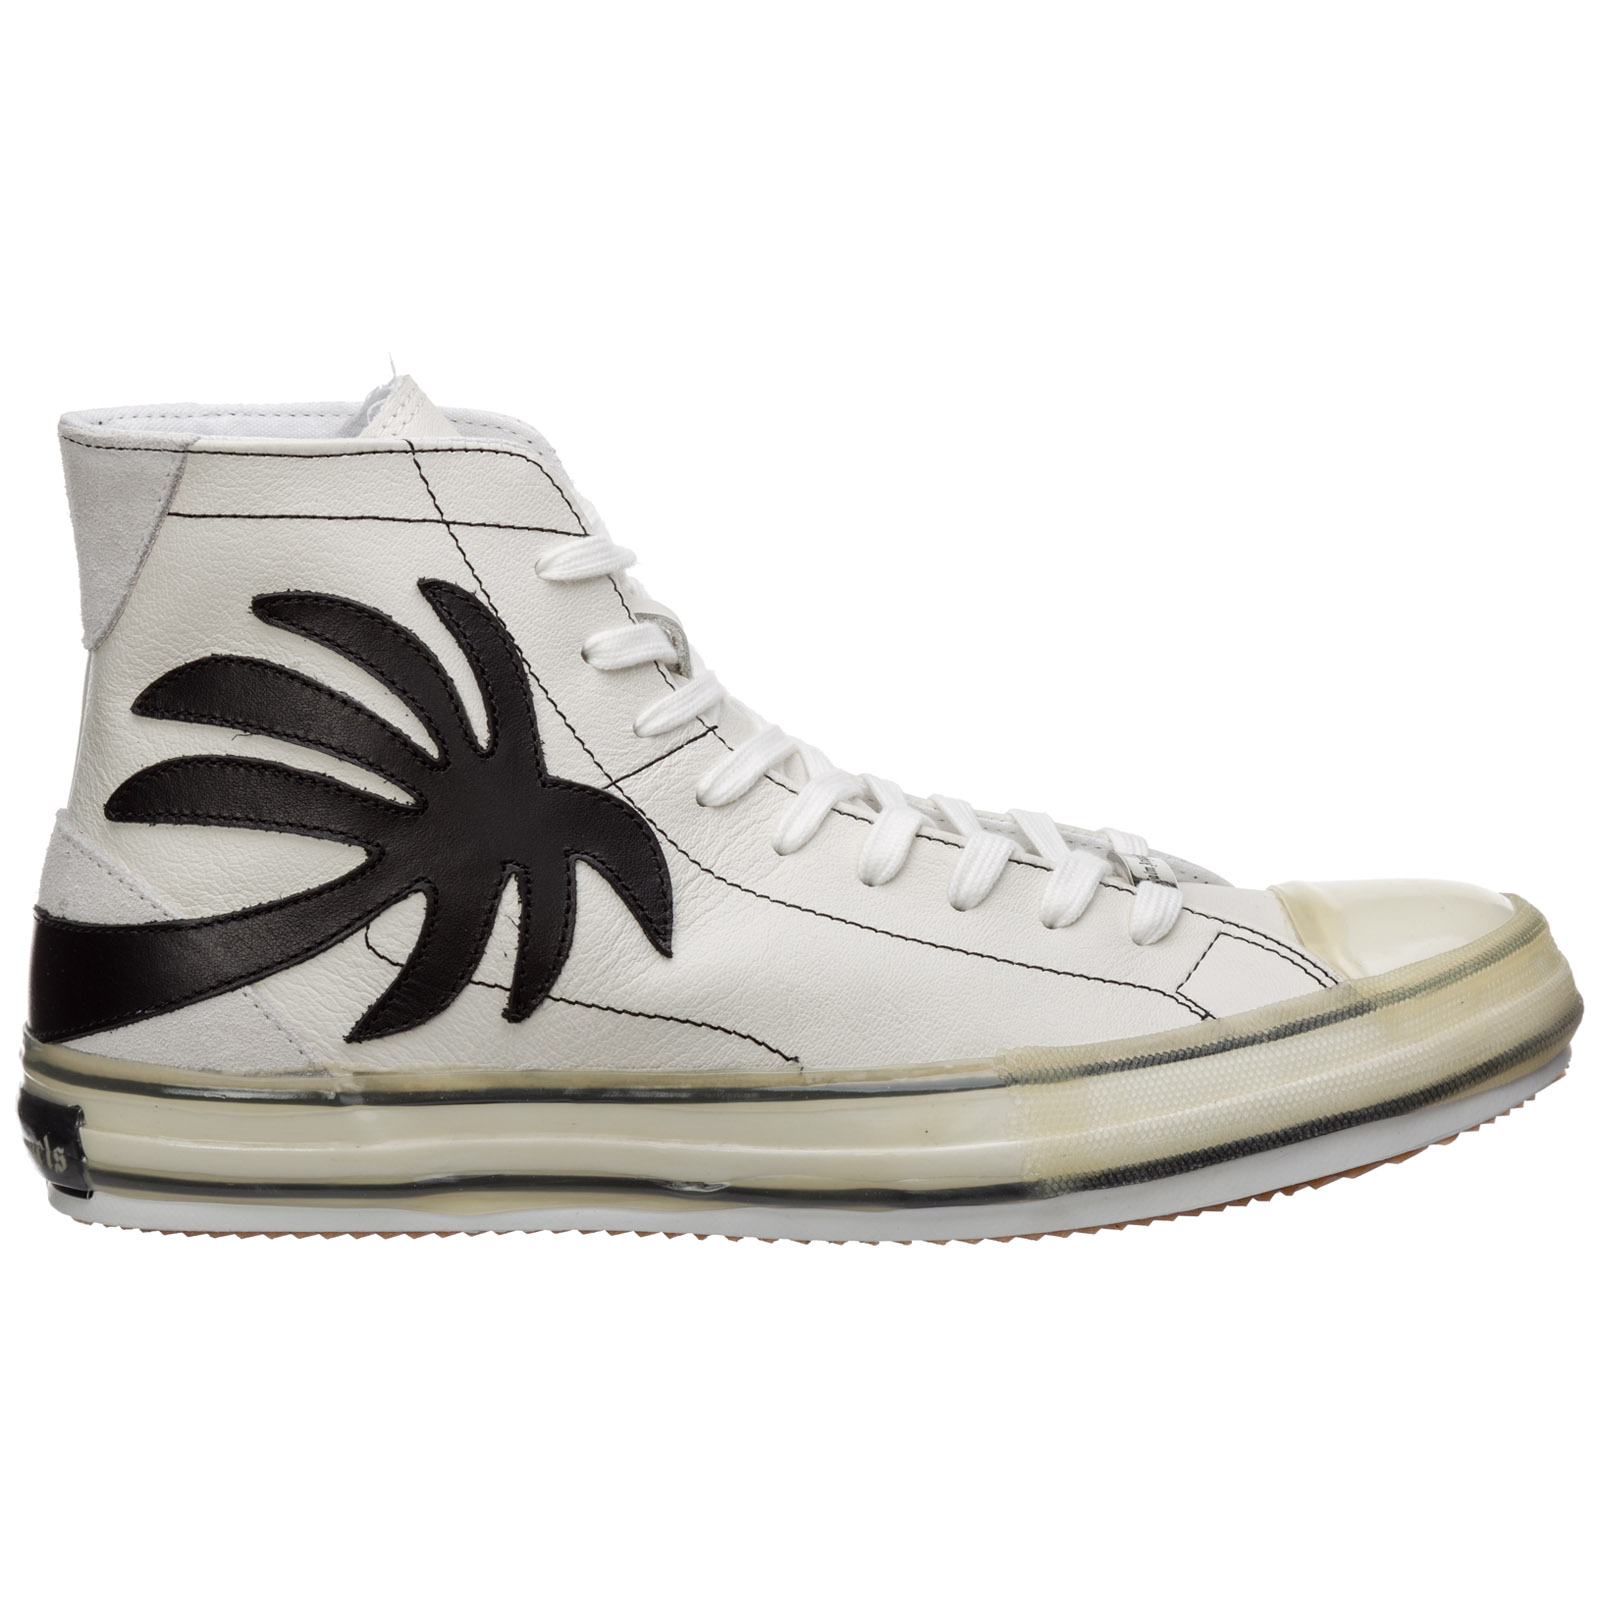 Palm Angels MEN'S SHOES HIGH TOP LEATHER TRAINERS SNEAKERS VULCANIZED